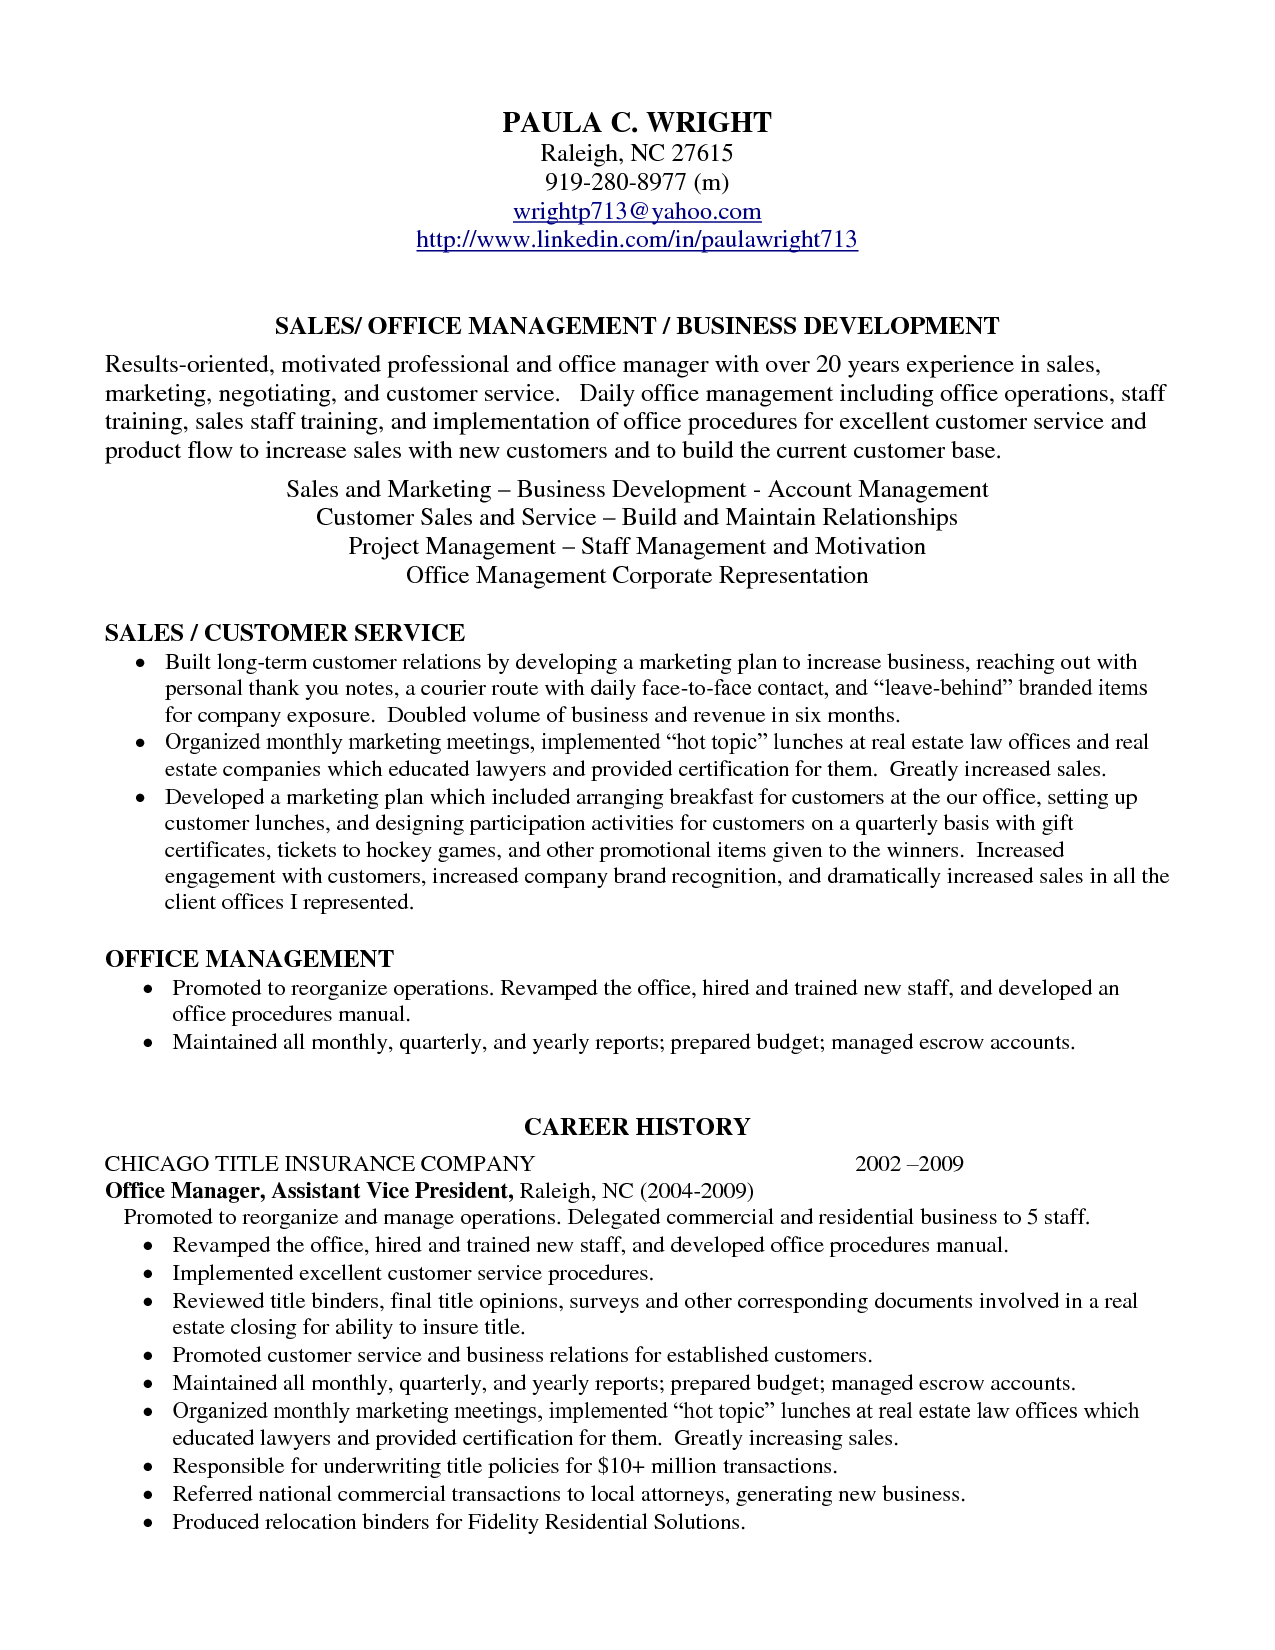 Marvelous Professional Marketing Resume Sample Manager Regard To Resume Professional Profile